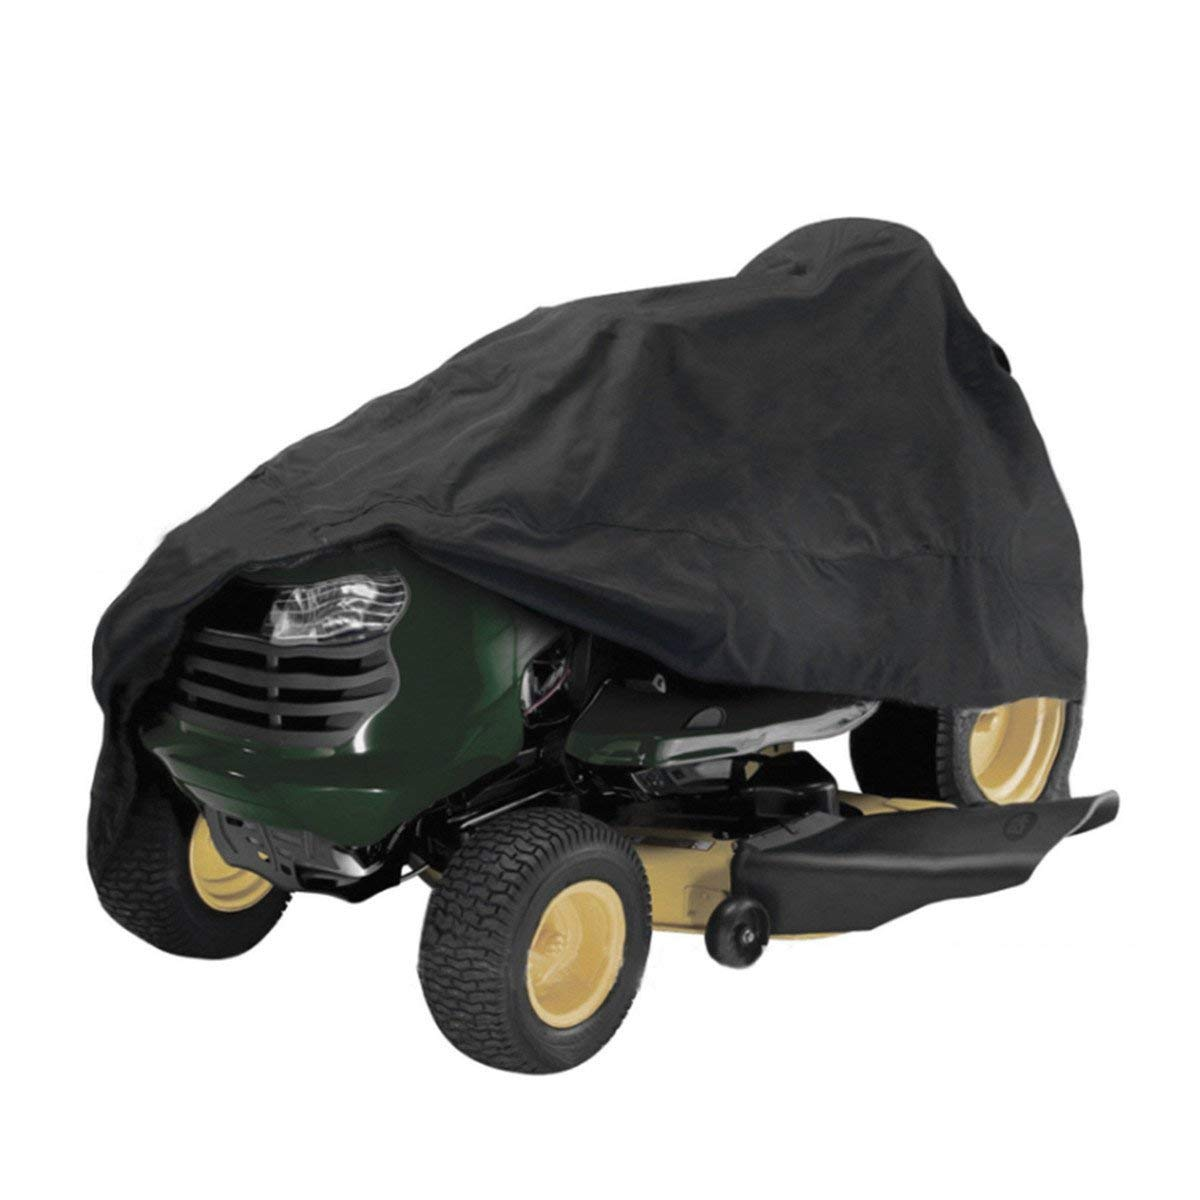 hight resolution of get quotations 54inch tractor cover garden yard riding mower lawn tractor cover protection black